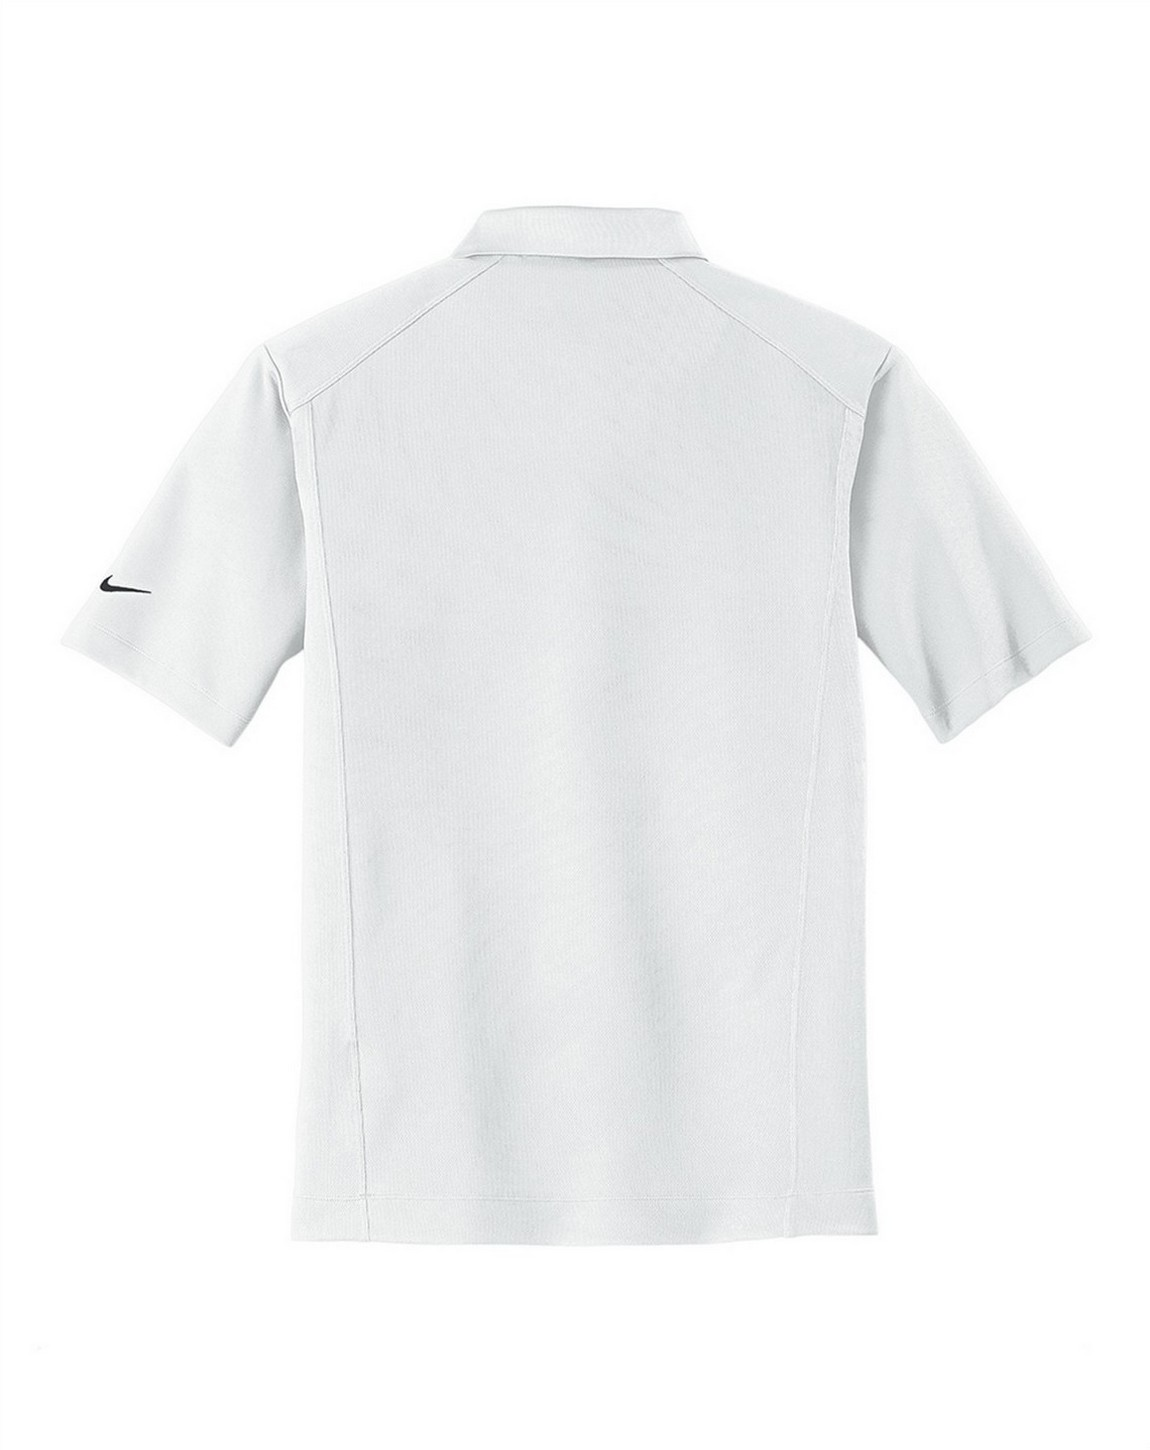 Nike golf dri fit classic logo embroidered polo at for Nike dri fit embroidered shirts